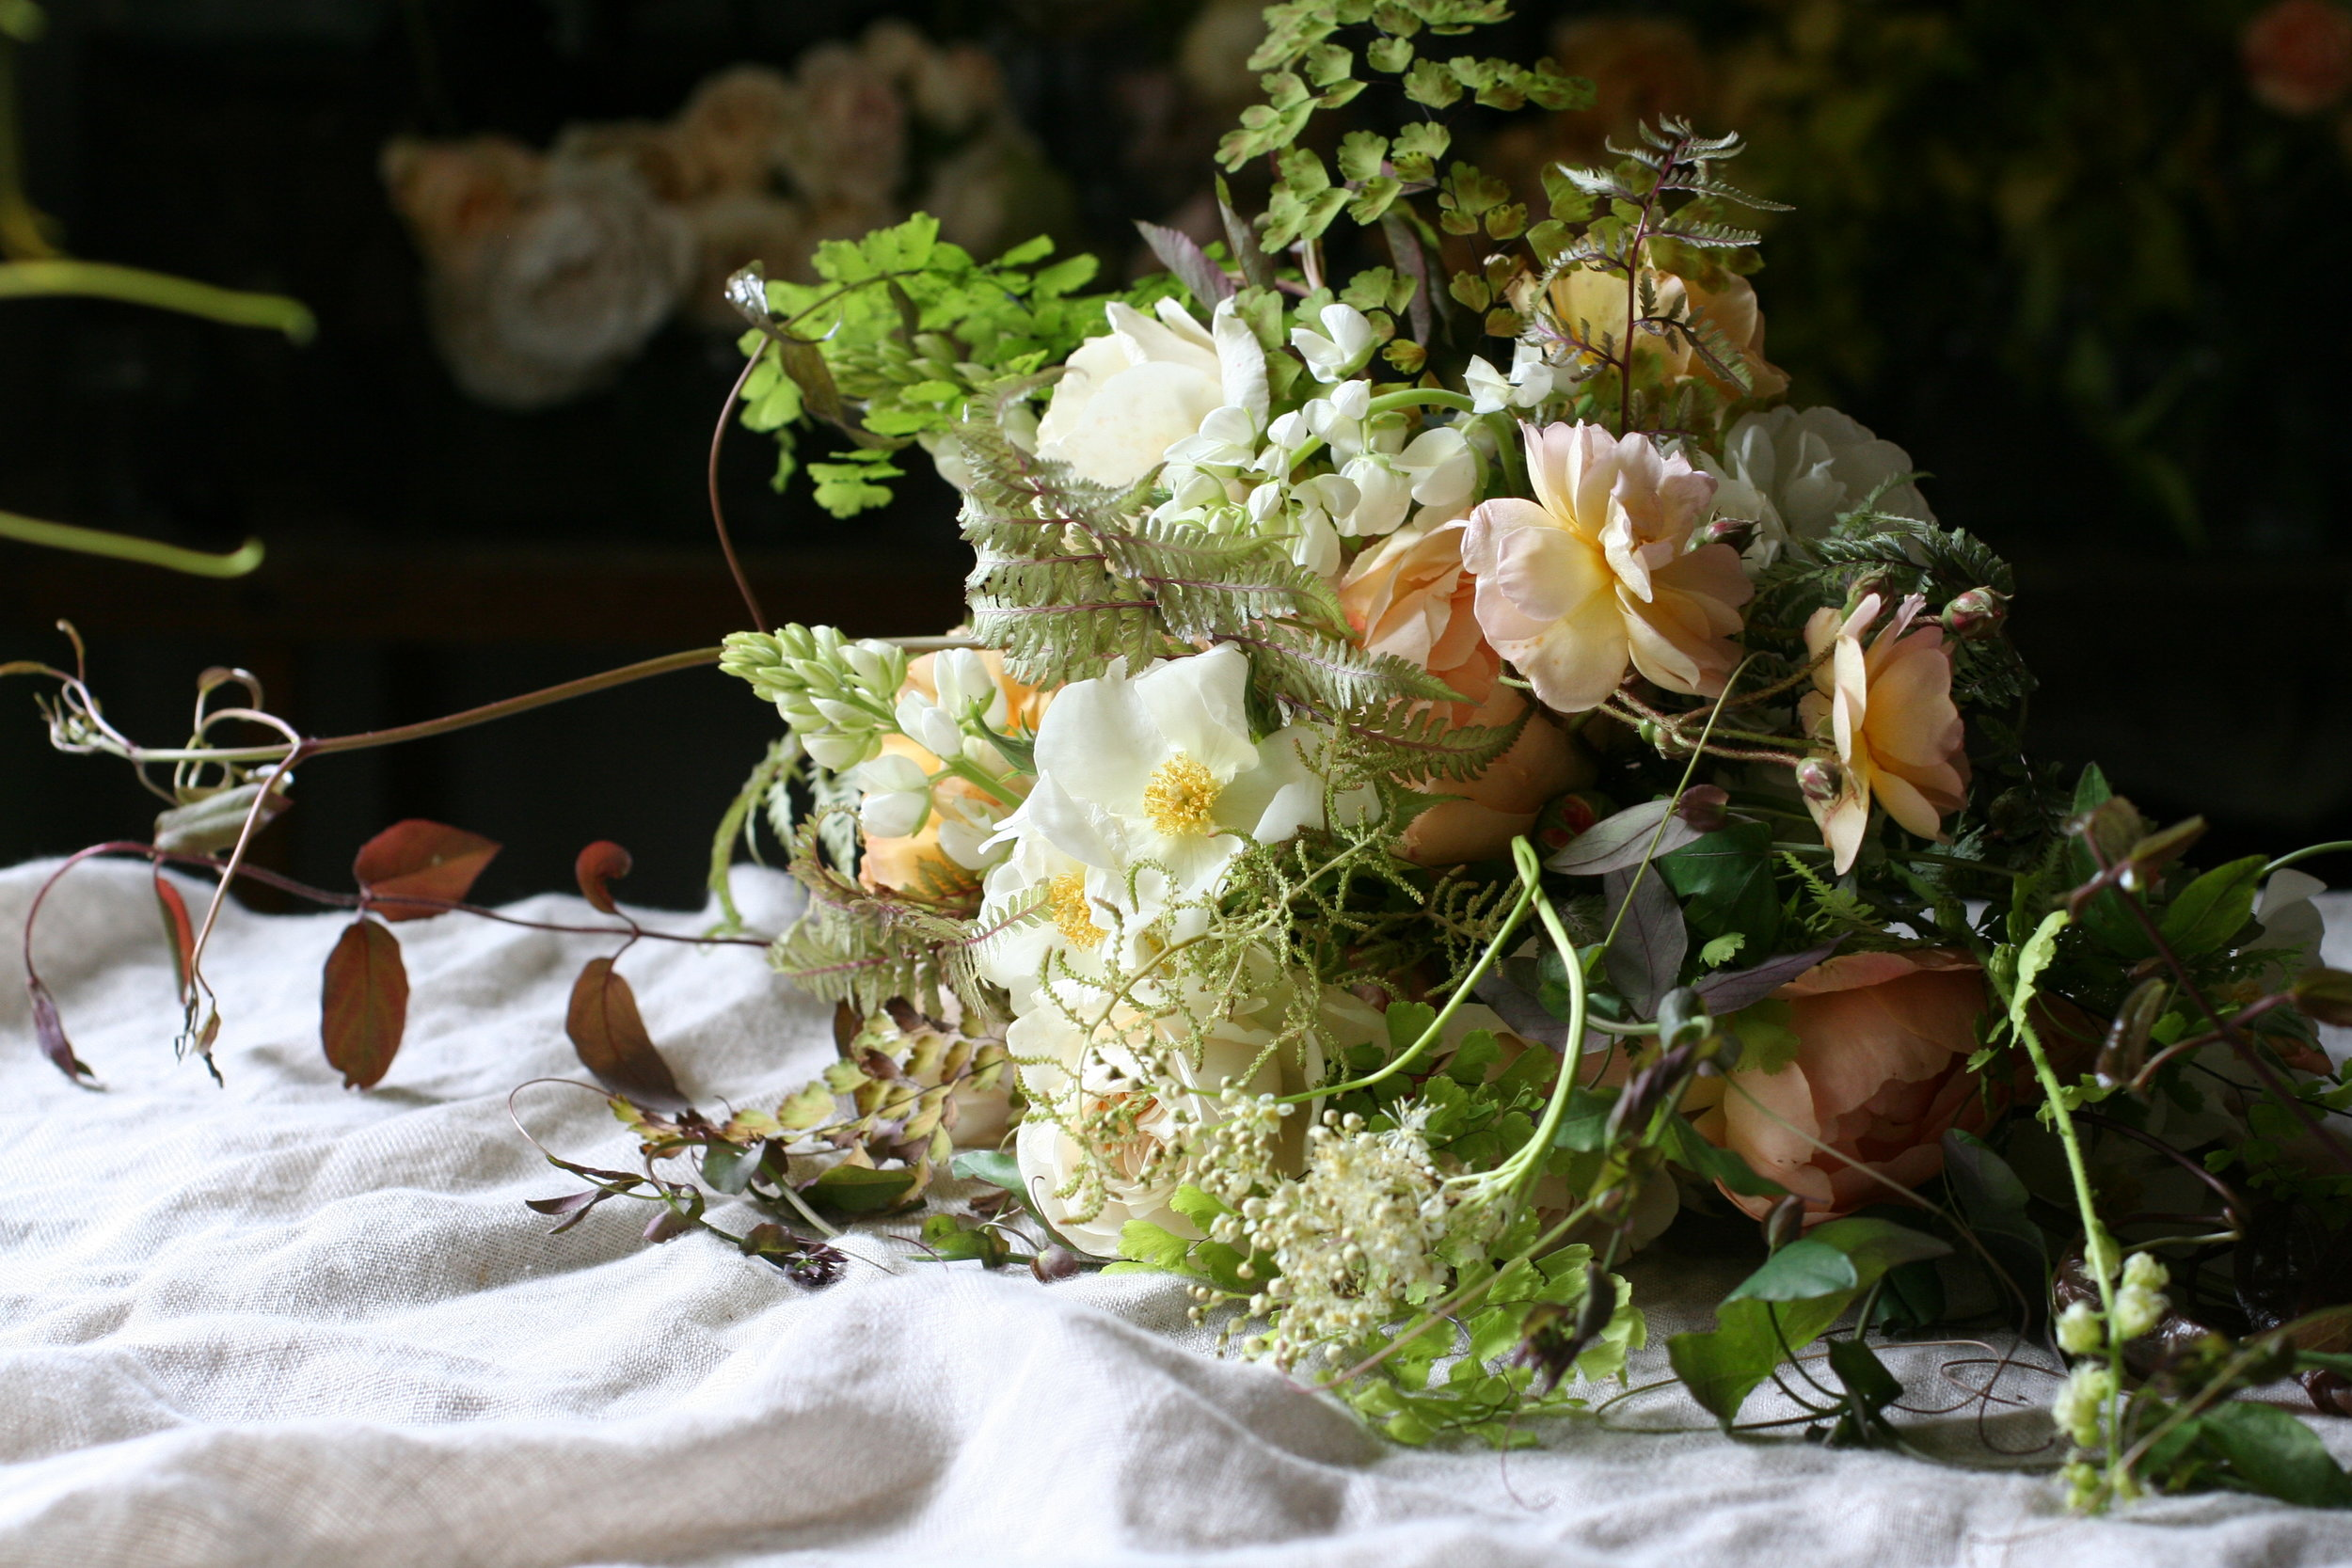 A wild and loose bouquet celebrating garden roses, lupins, japanese painted ferns and maidenhair fern.  Photo by Lucy